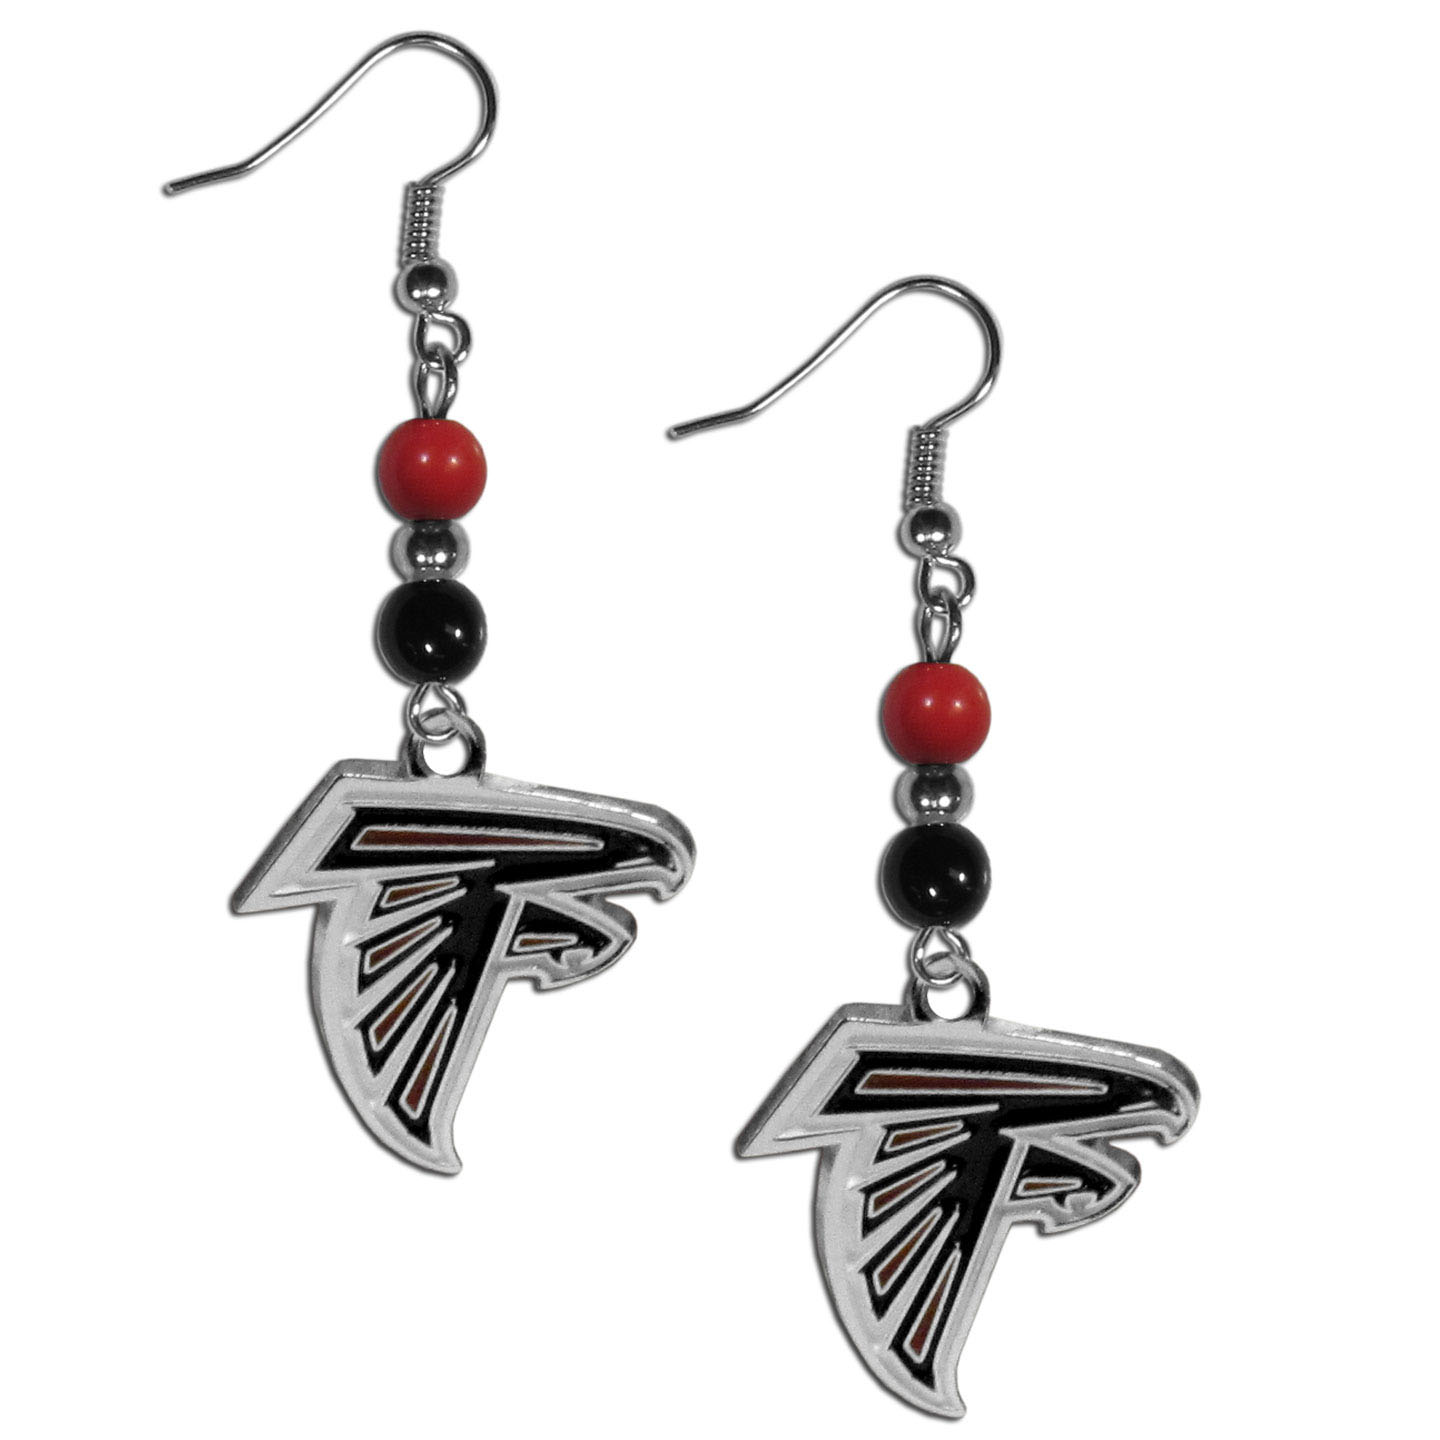 Atlanta Falcons Fan Bead Dangle Earrings - Love your team, show it off with our Atlanta Falcons bead dangle earrings! These super cute earrings hang approximately 2 inches and features 2 team colored beads and a high polish team charm. A must have for game day!